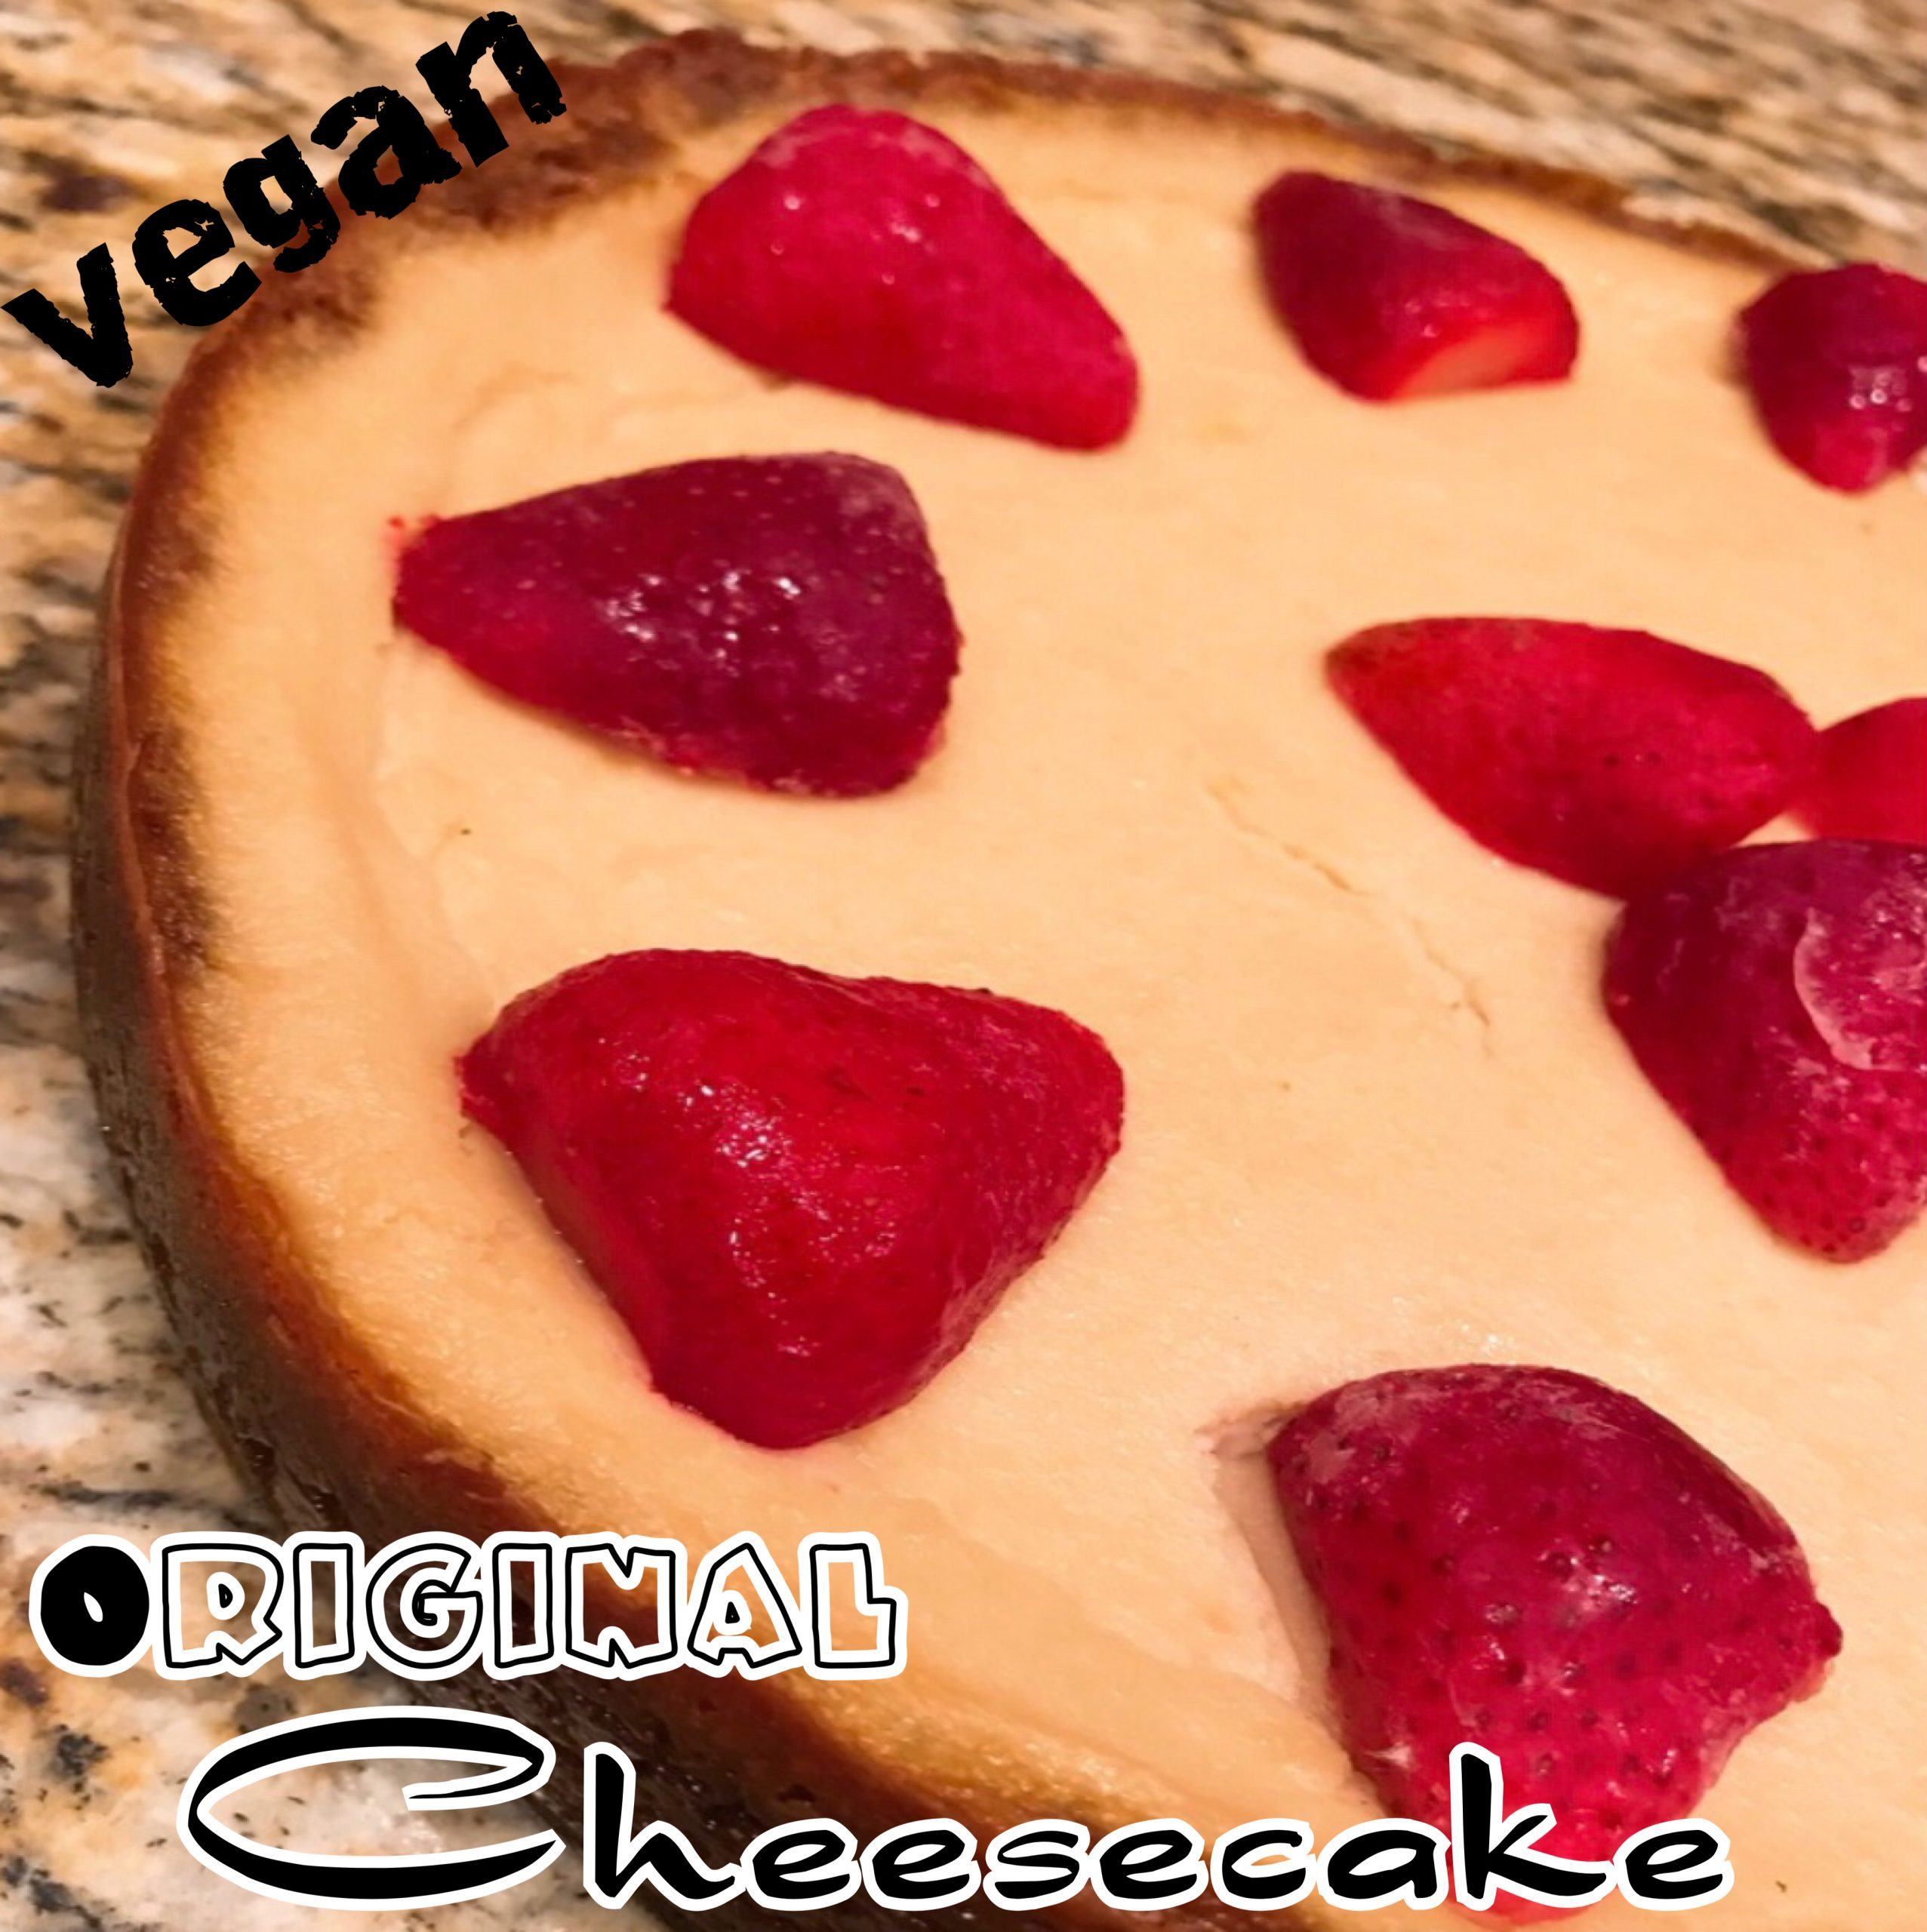 Protected: Vegan Original Cheesecake